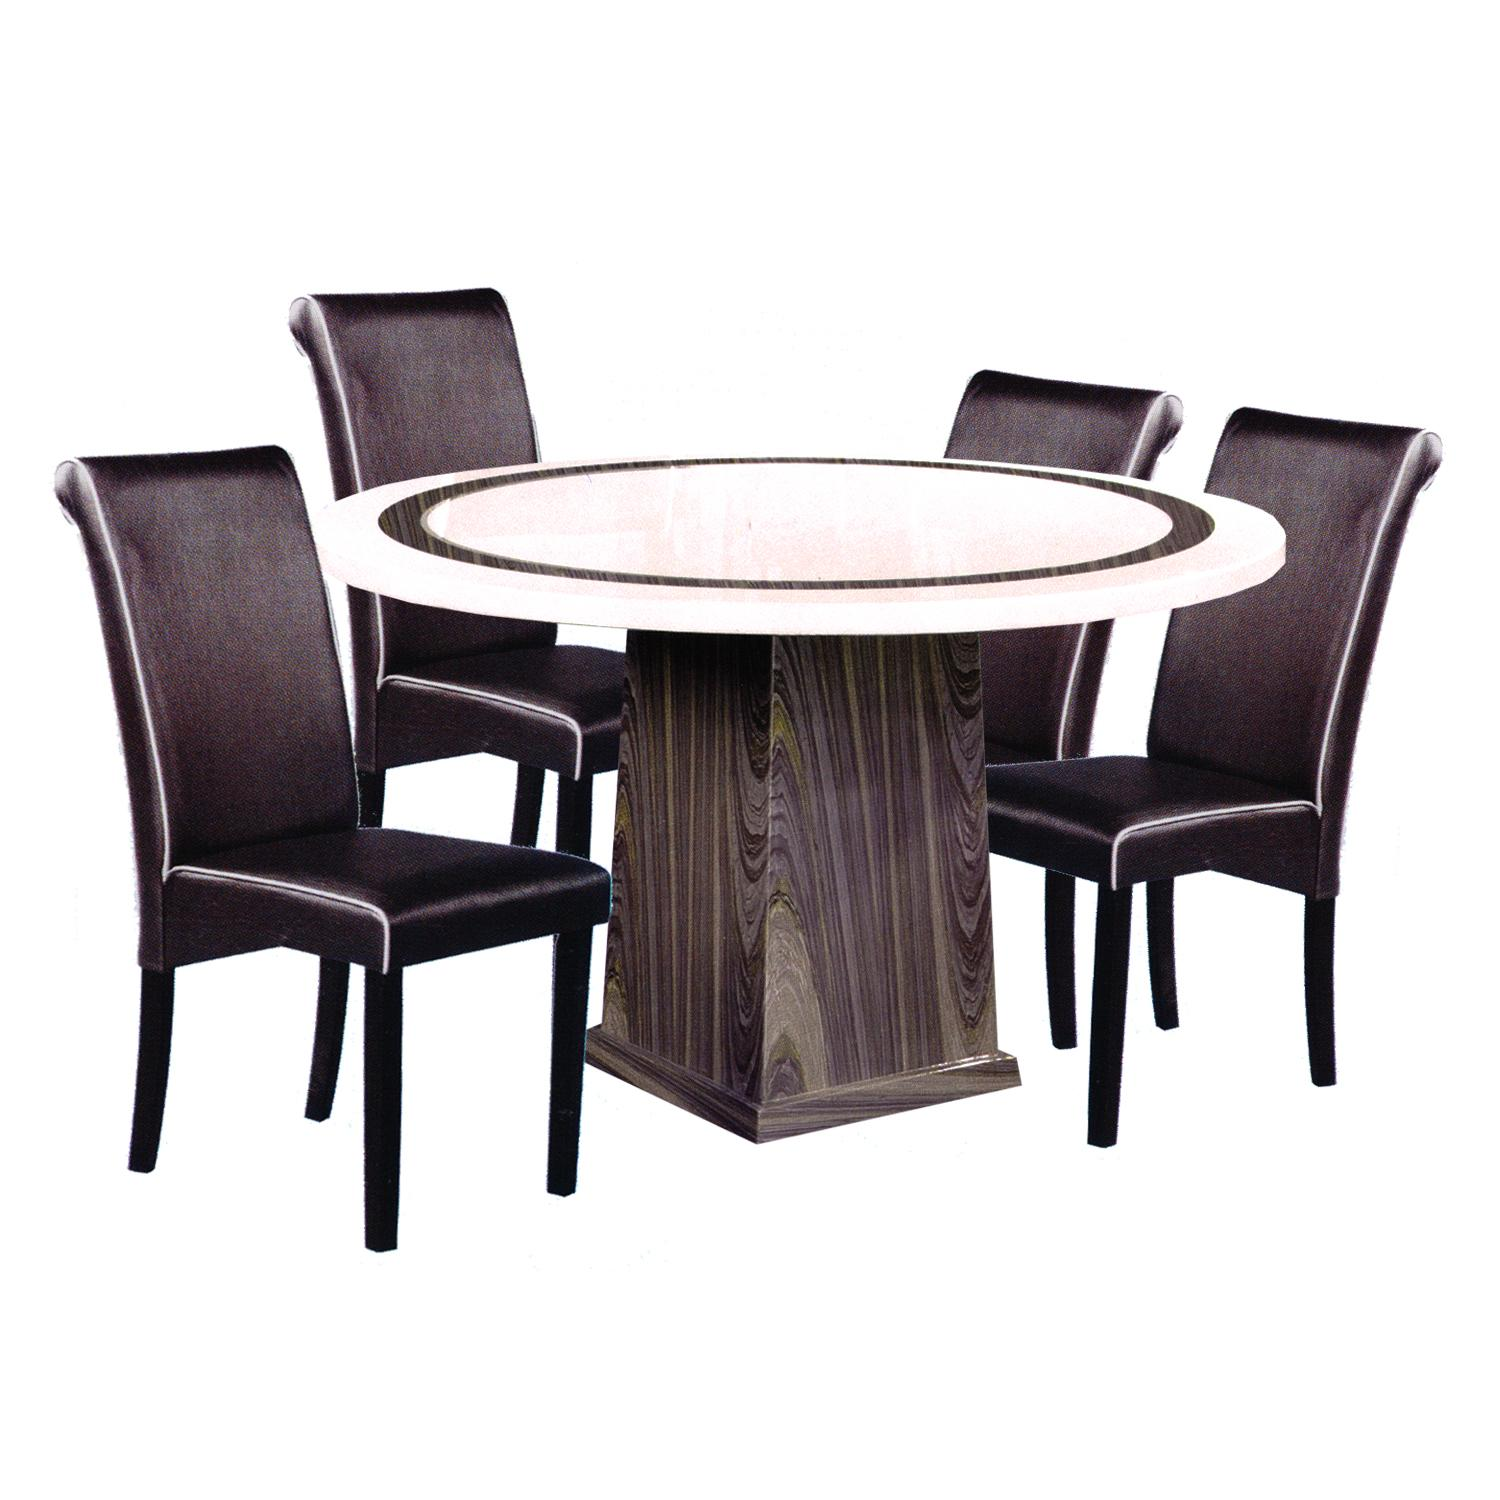 SORA / BARRY 1 + 6 Marble Top Dining Set